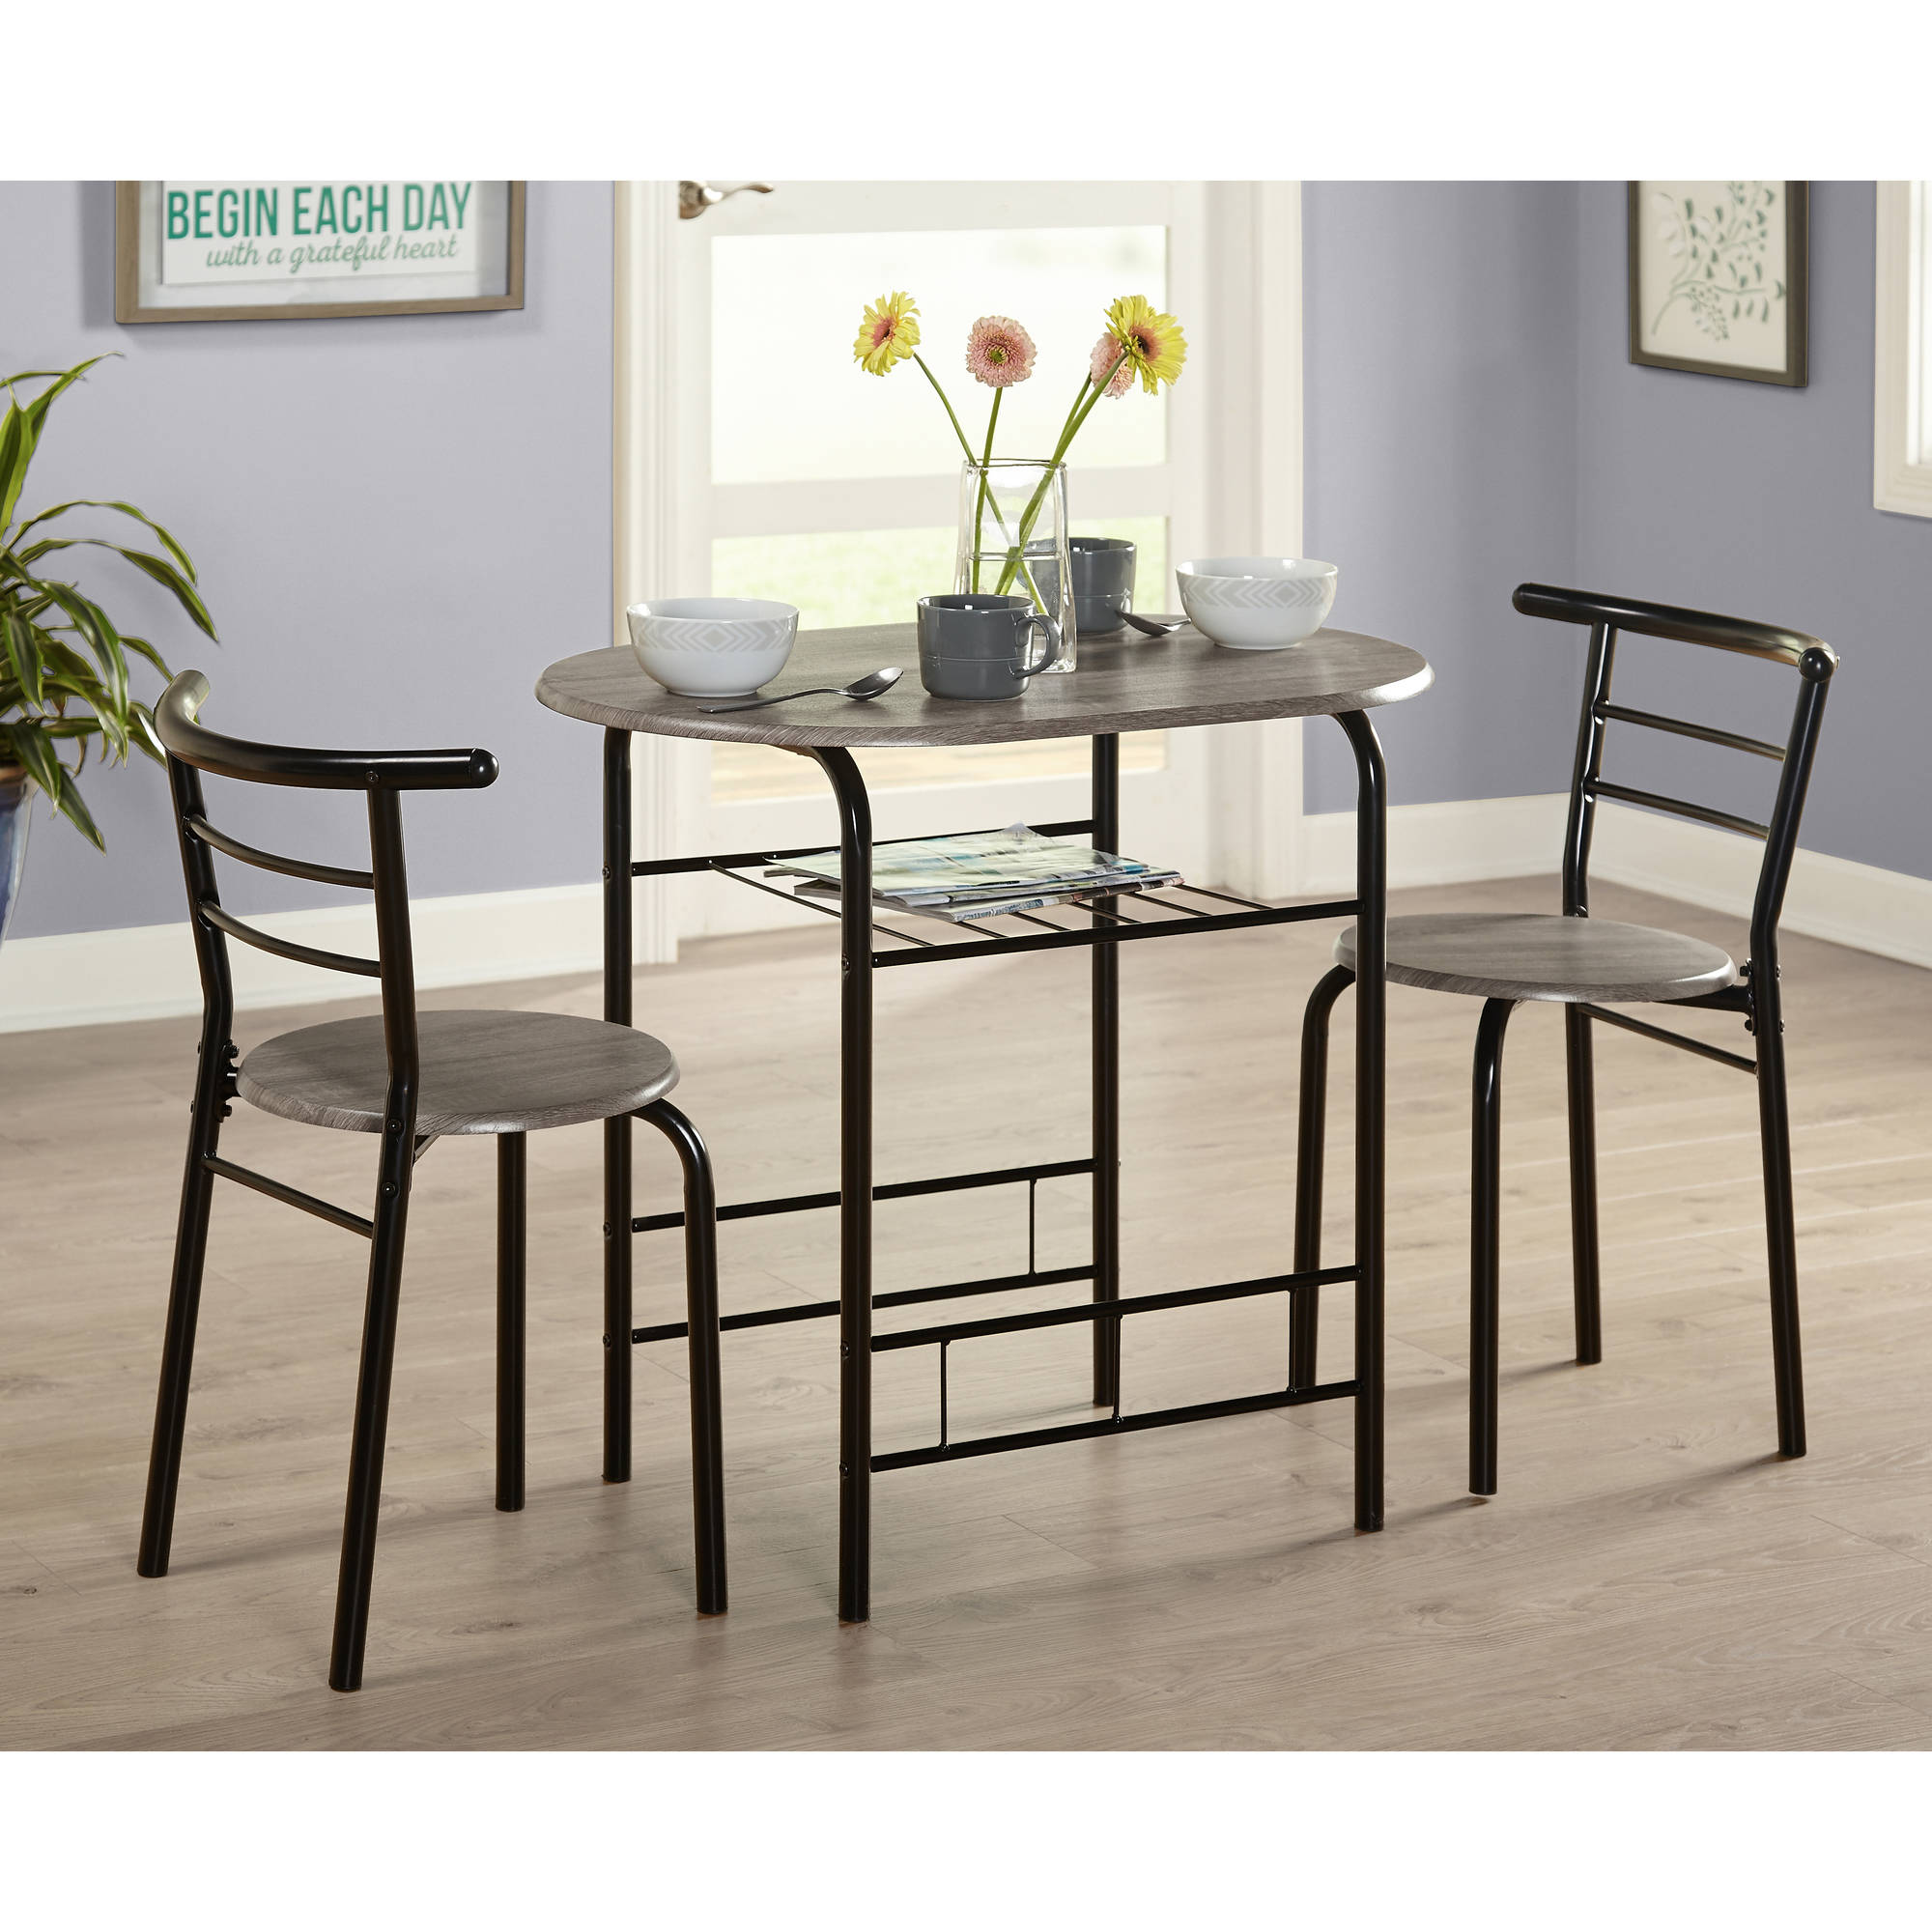 3 Piece Bistro Set, Multiple Colors   Walmart.com